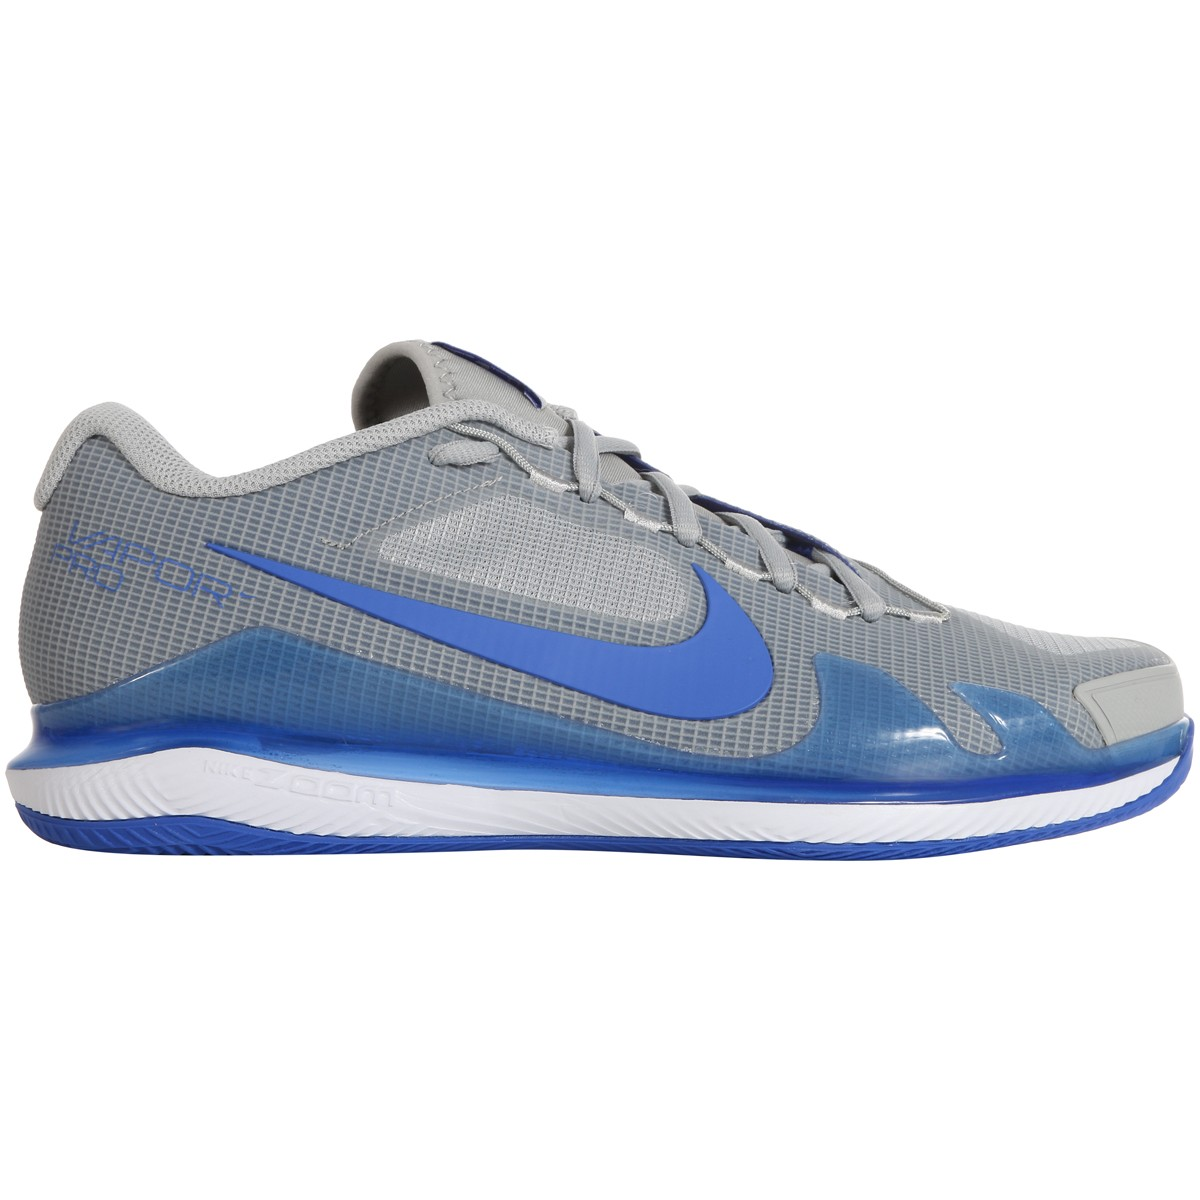 CHAUSSURES NIKE AIR ZOOM VAPOR PRO TERRE BATTUE - NIKE - Homme ...